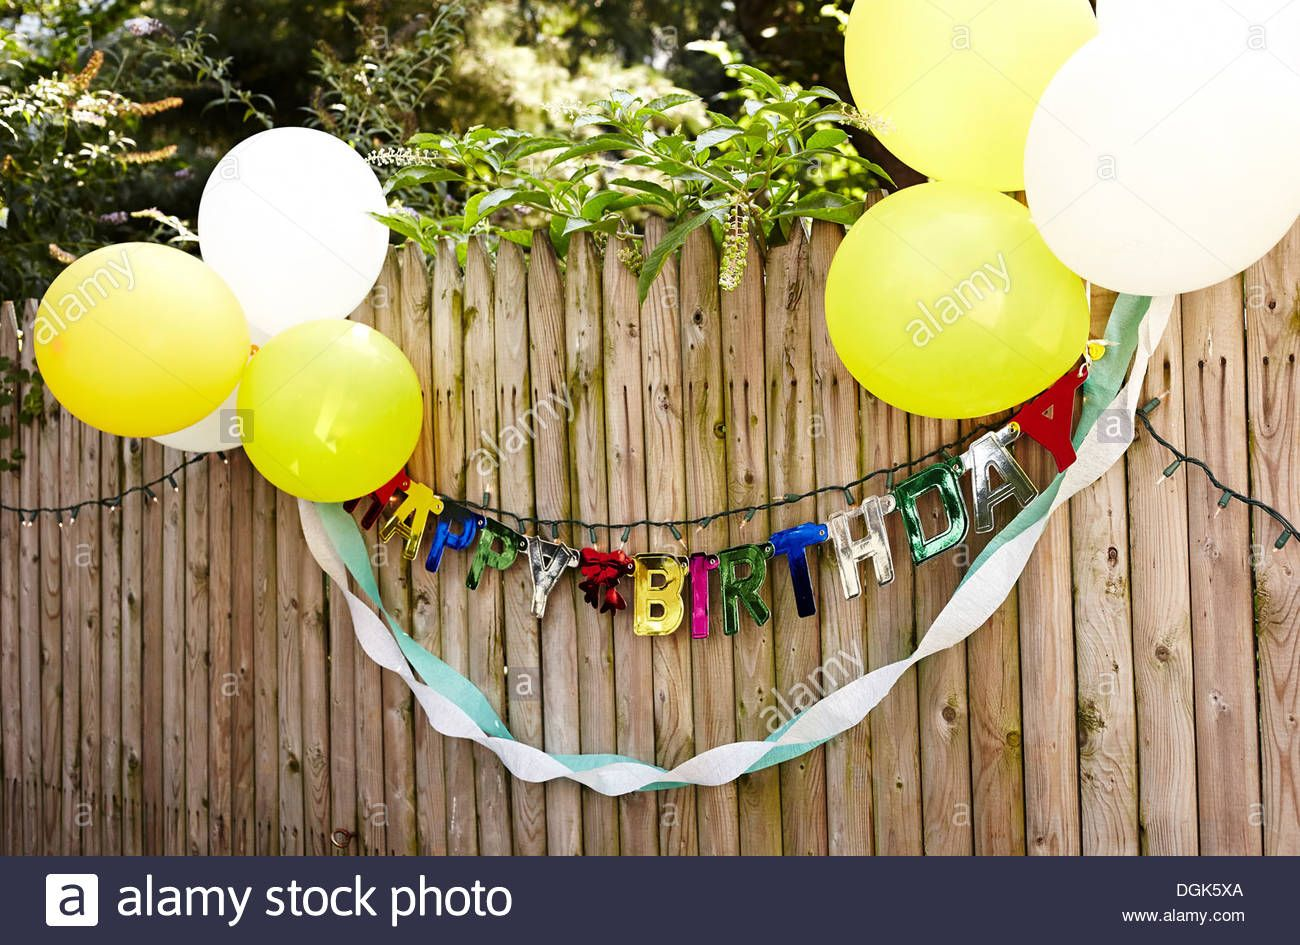 Birthday banner and balloons